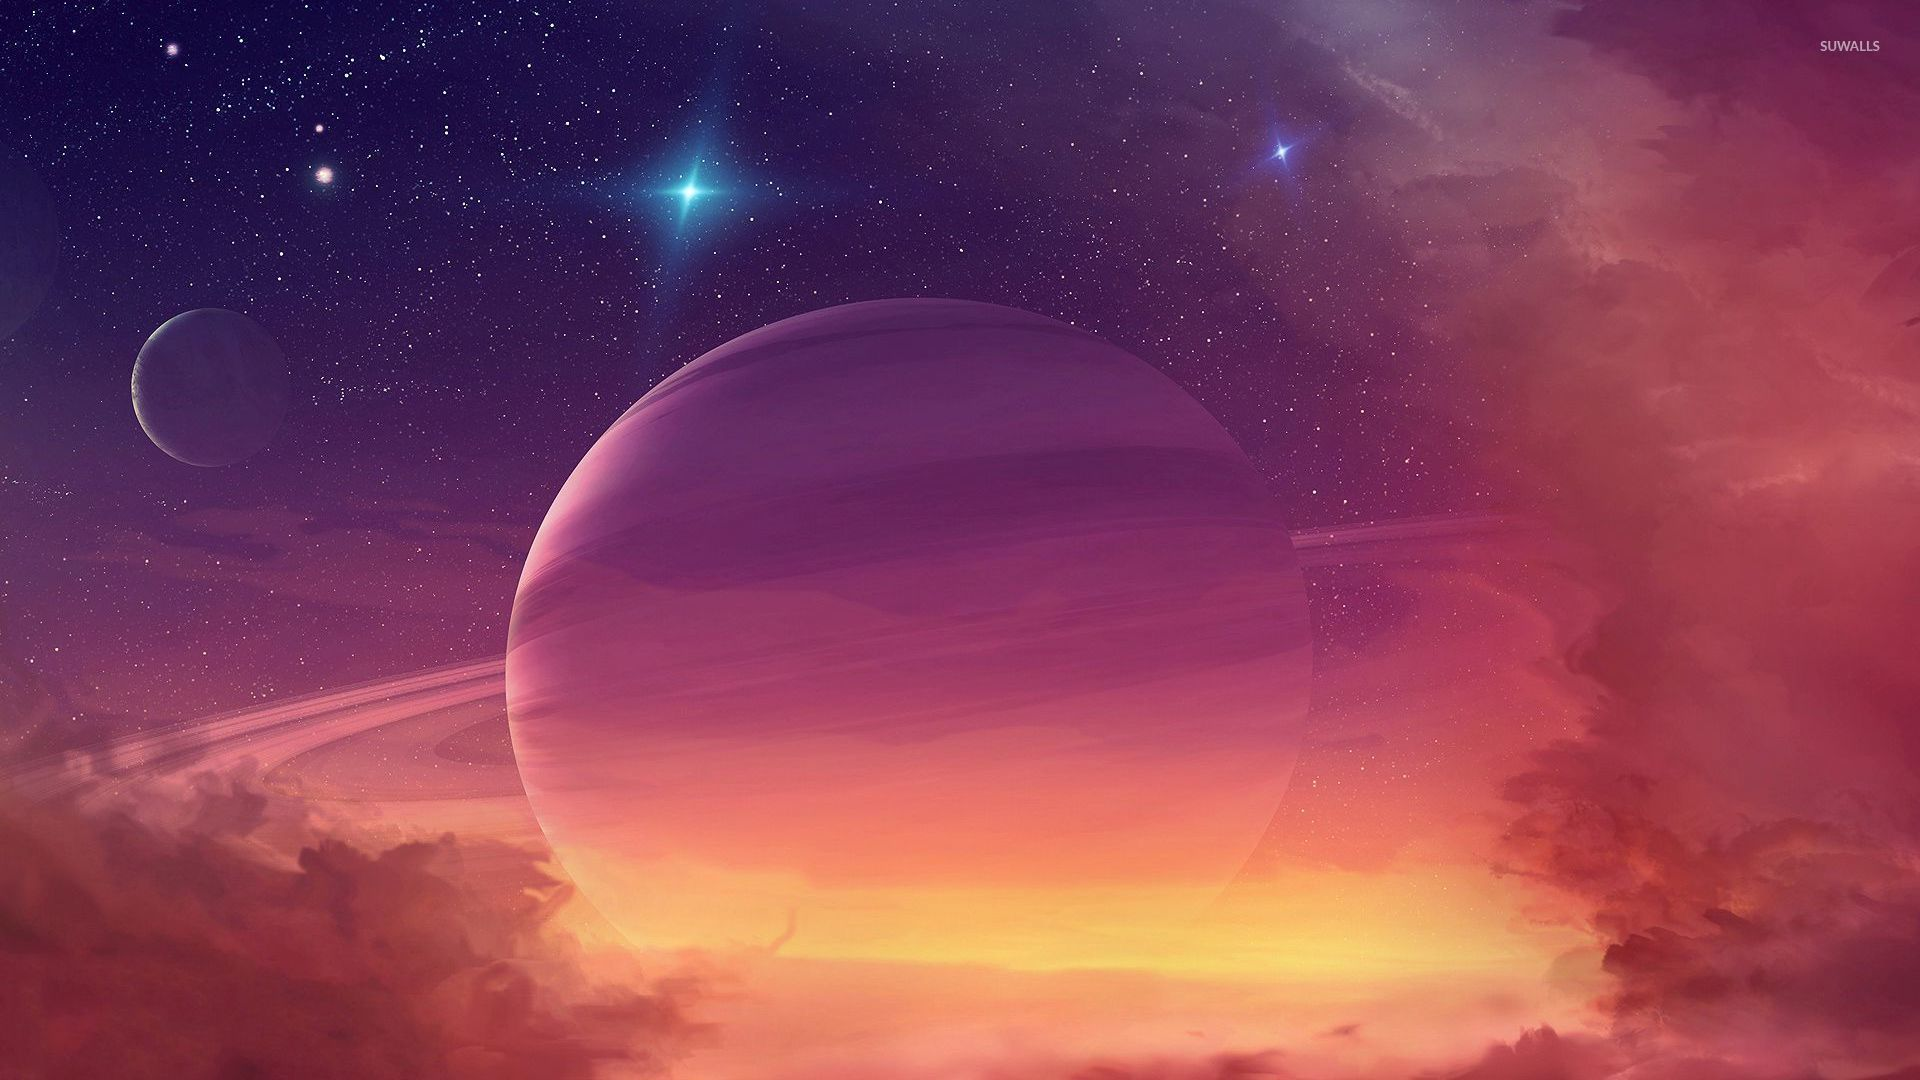 Light Pink Wallpaper Quotes Planet In The Clouds Wallpaper Space Wallpapers 32662